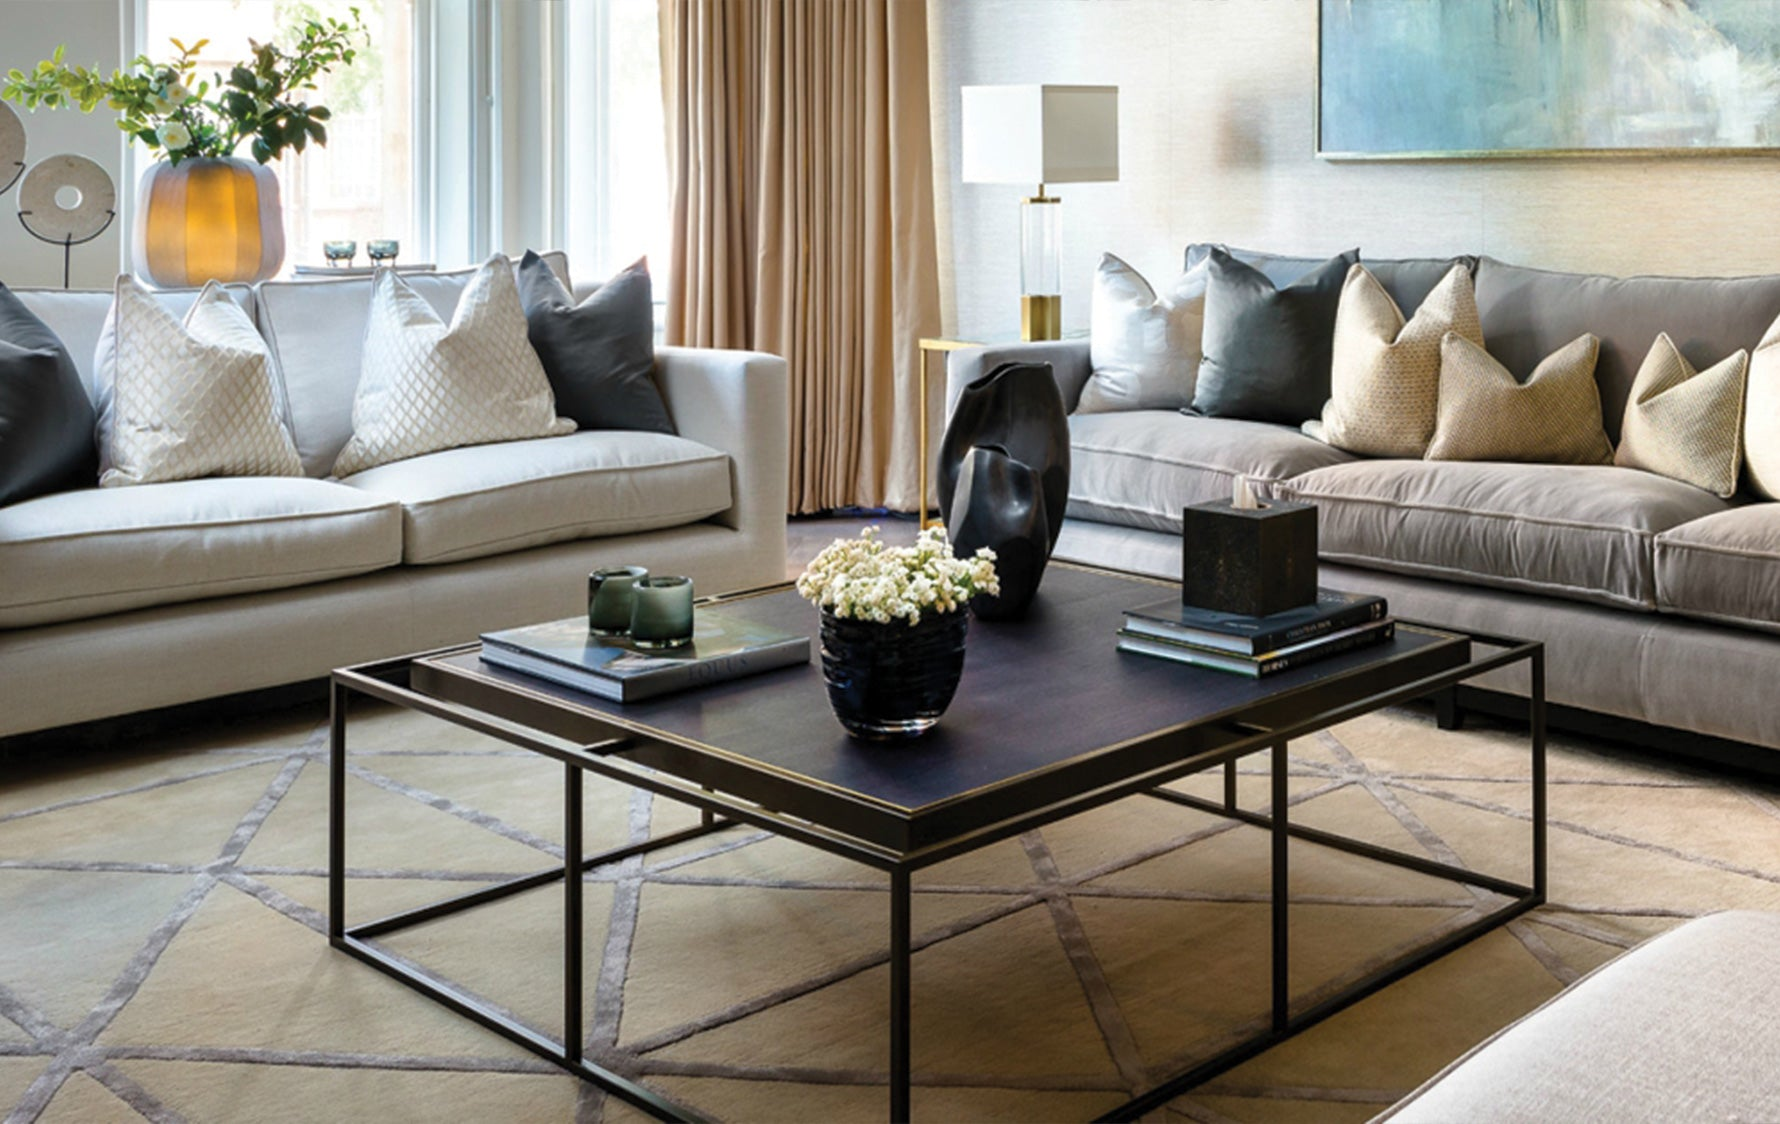 Top 8 British Furniture Brands You Need To Know | LuxDeco